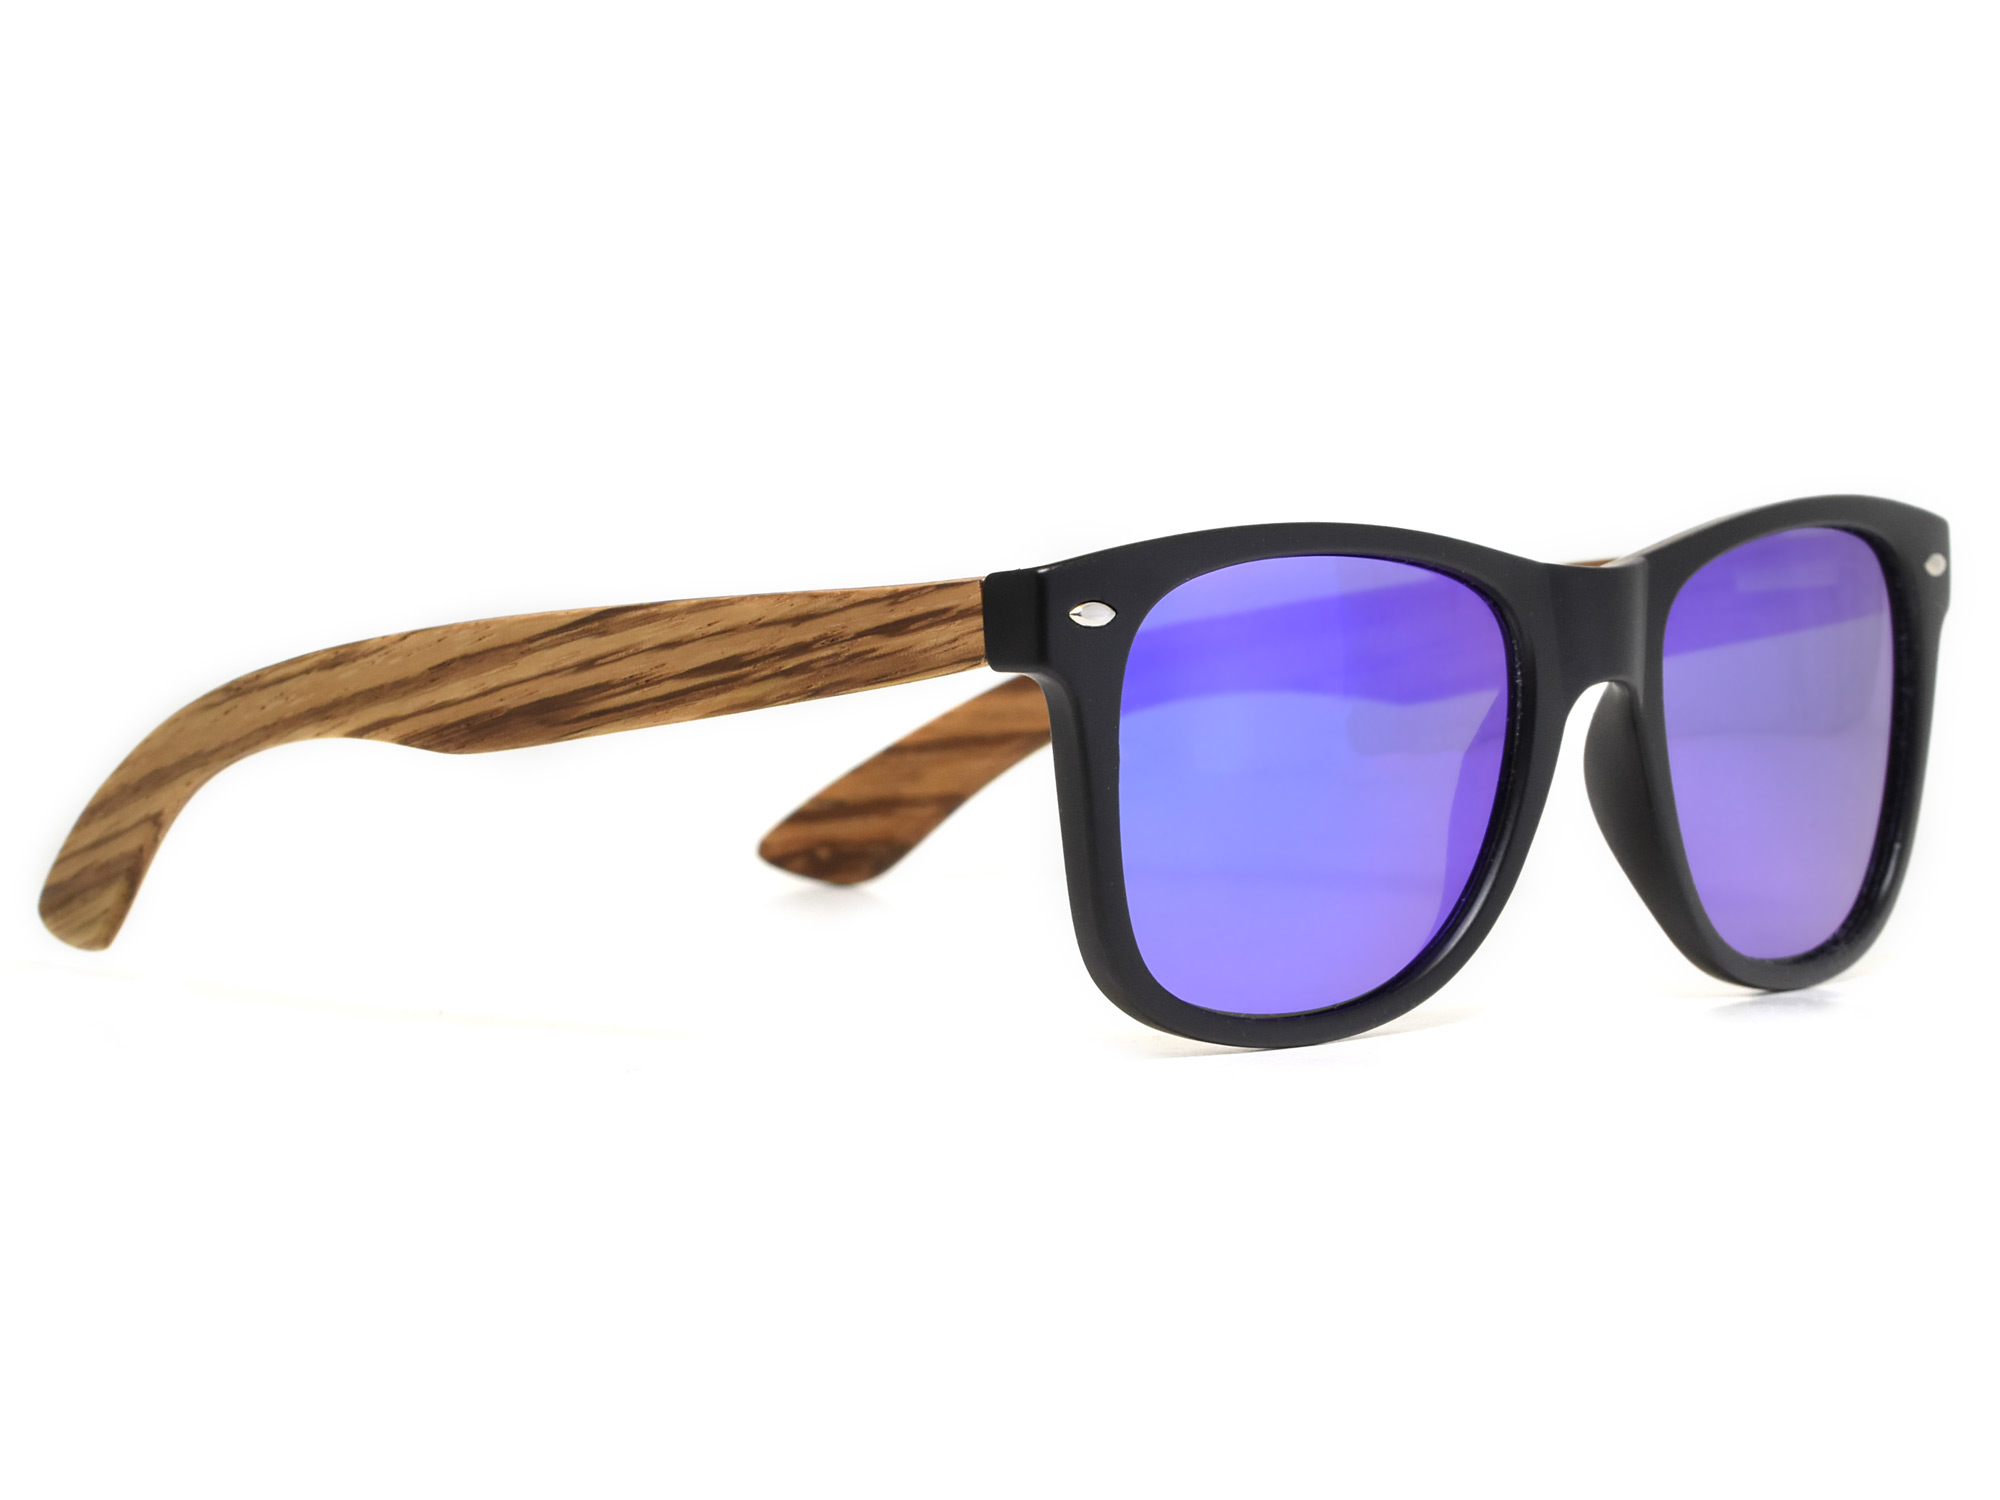 Zebra wood sunglasses with blue mirrored lenses right